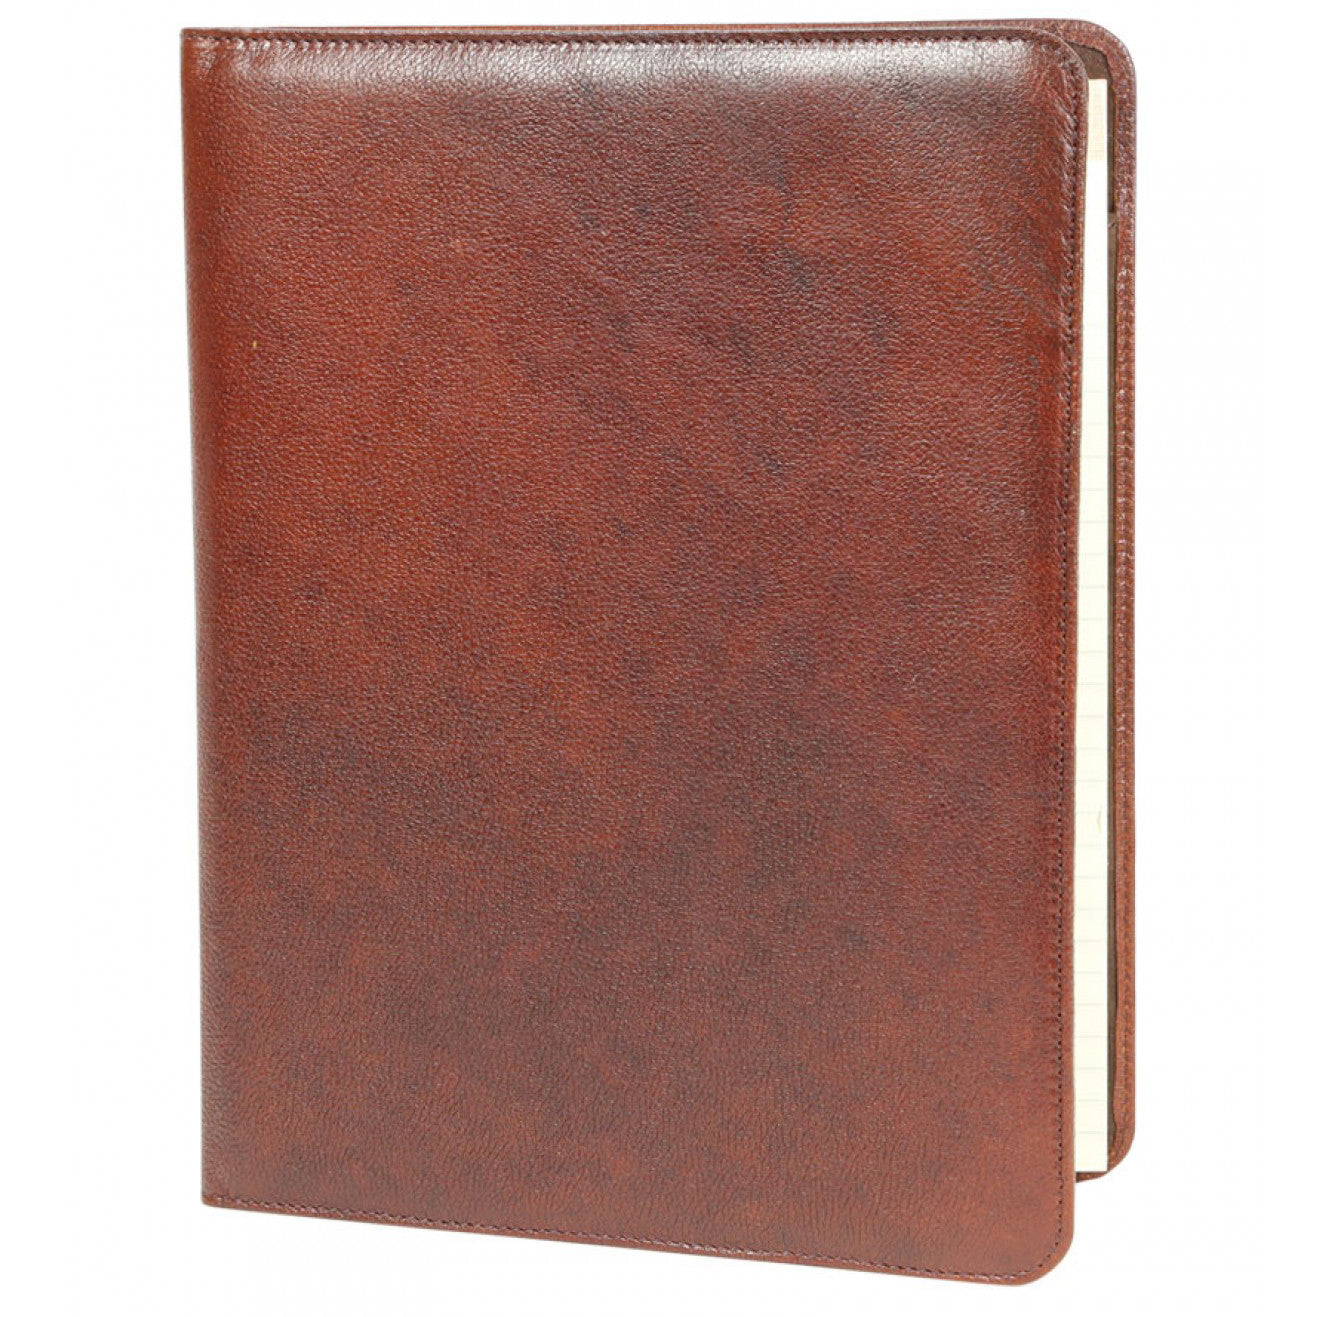 Aston Leather Brown Portfolio-Pen Boutique Ltd